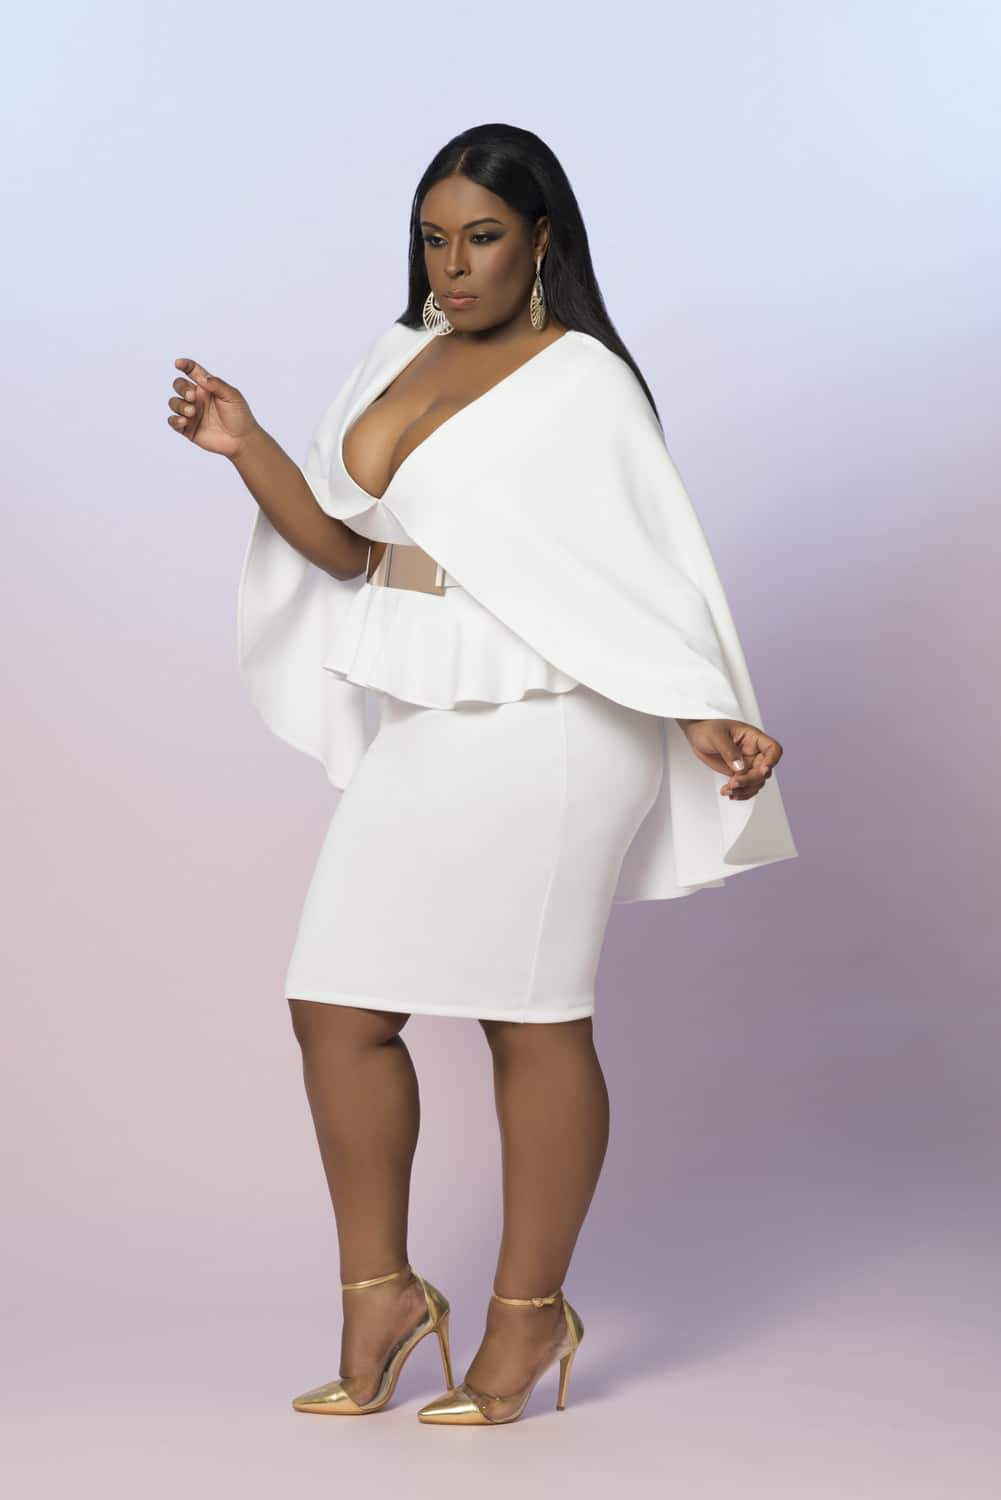 Z by Zevarra White Label Plus Size Designer Summer Collection on The Curvy Fashionista